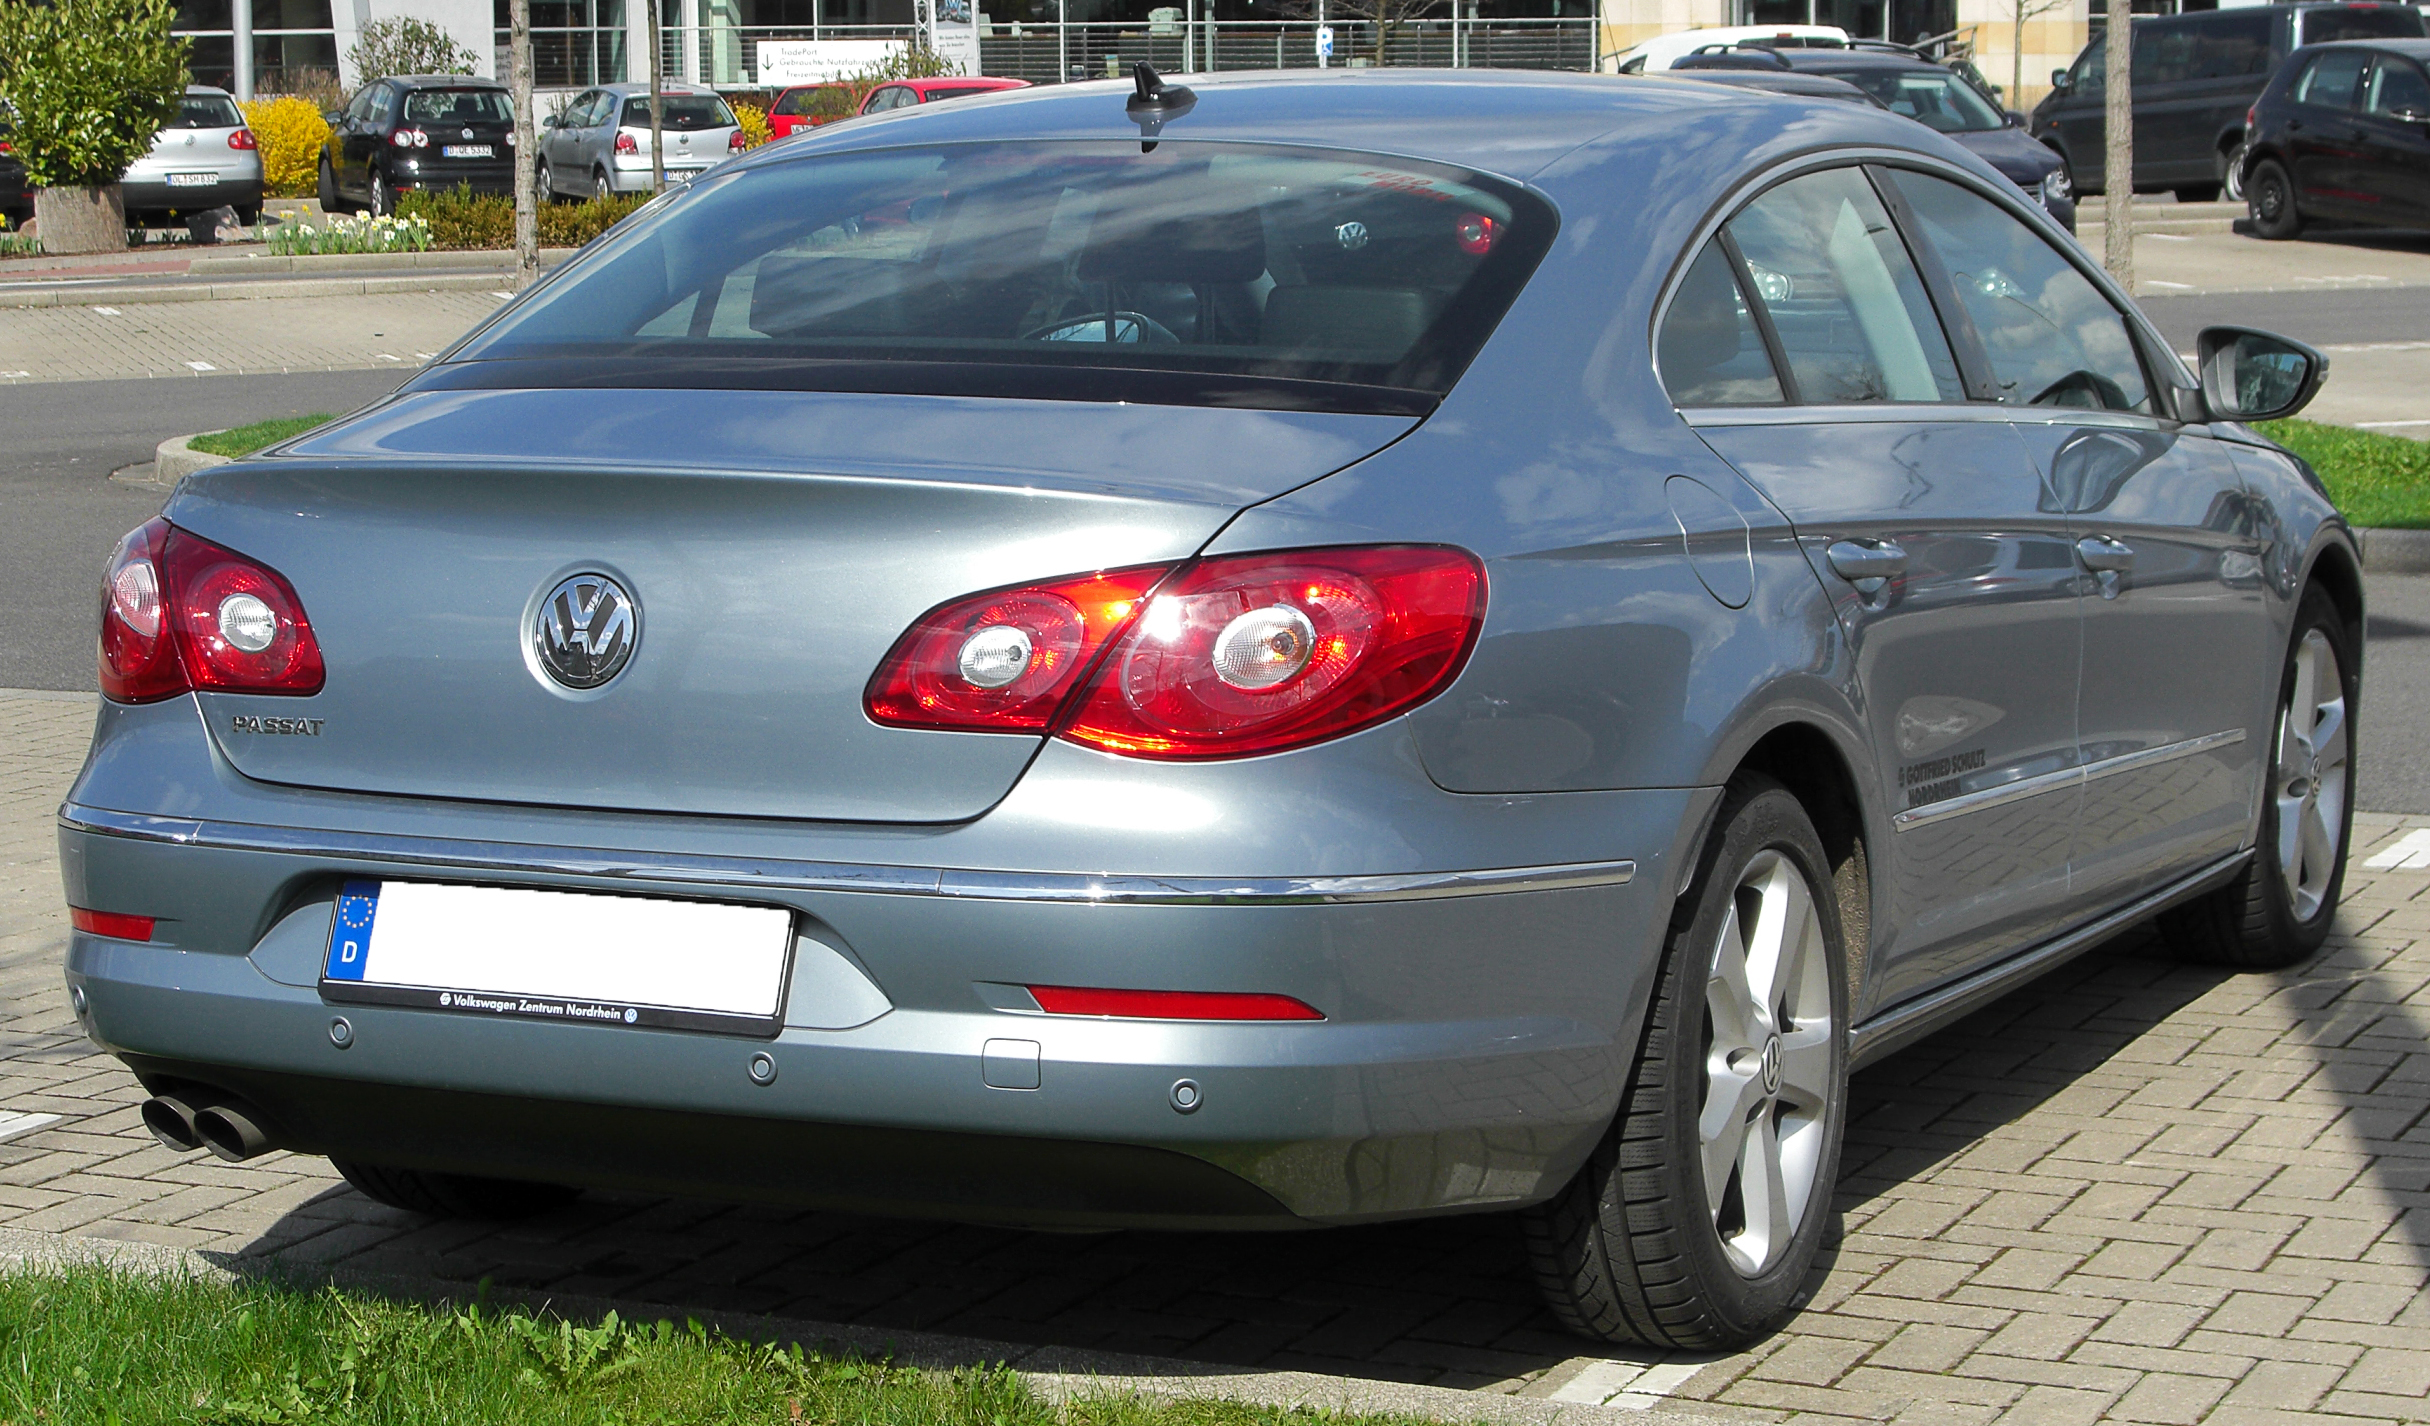 File:VW Passat CC rear 20100402.jpg - Wikimedia Commons